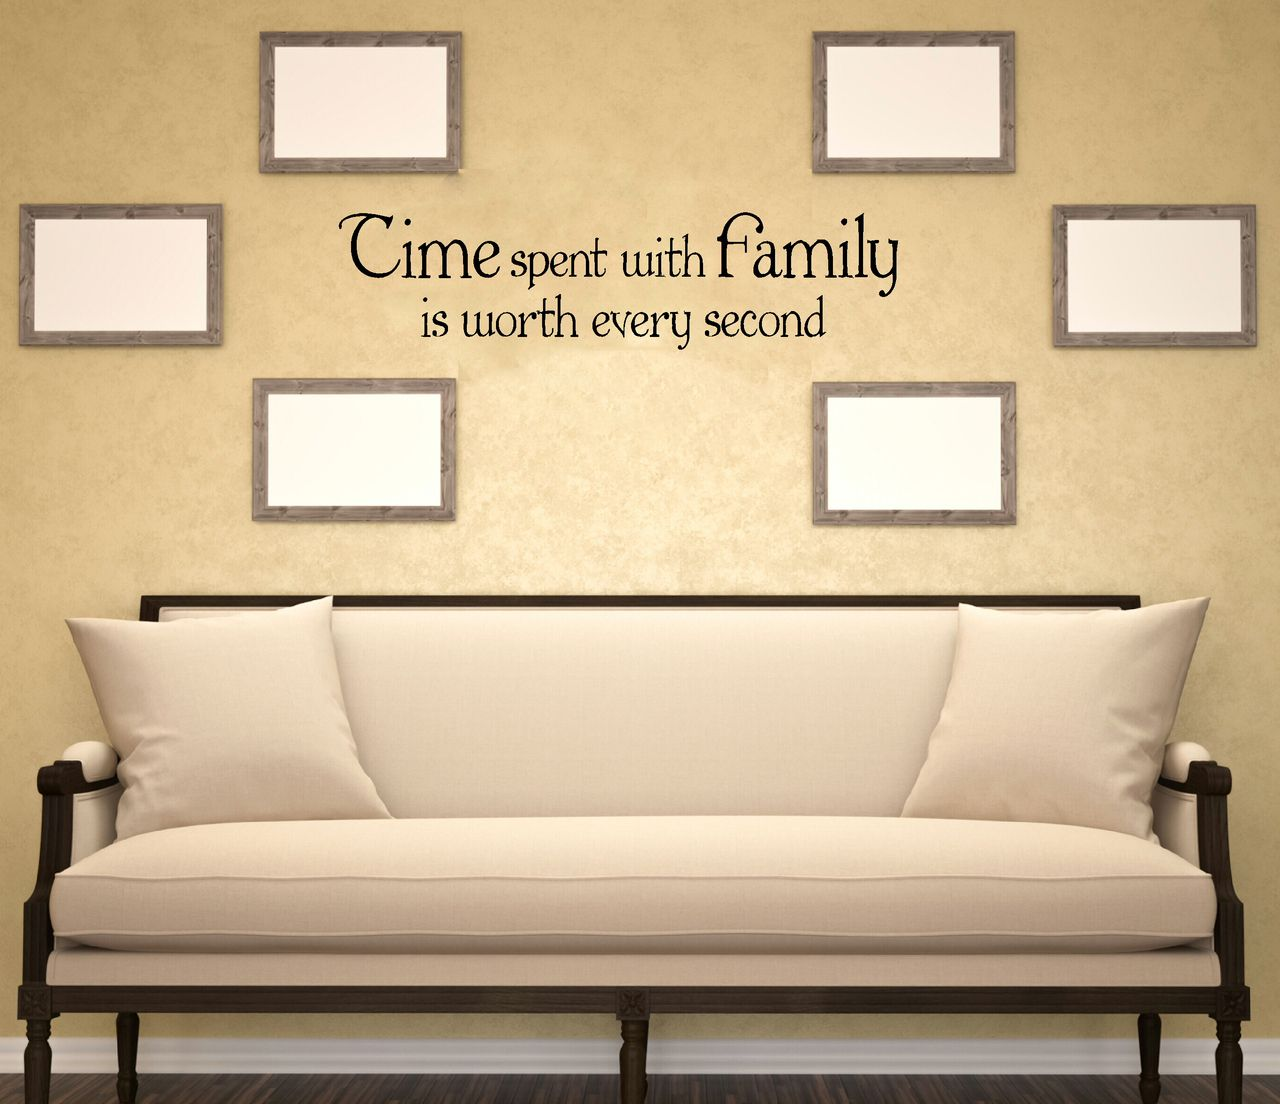 Time Spent With Family Worth Every Second Family Wall Decals for ...